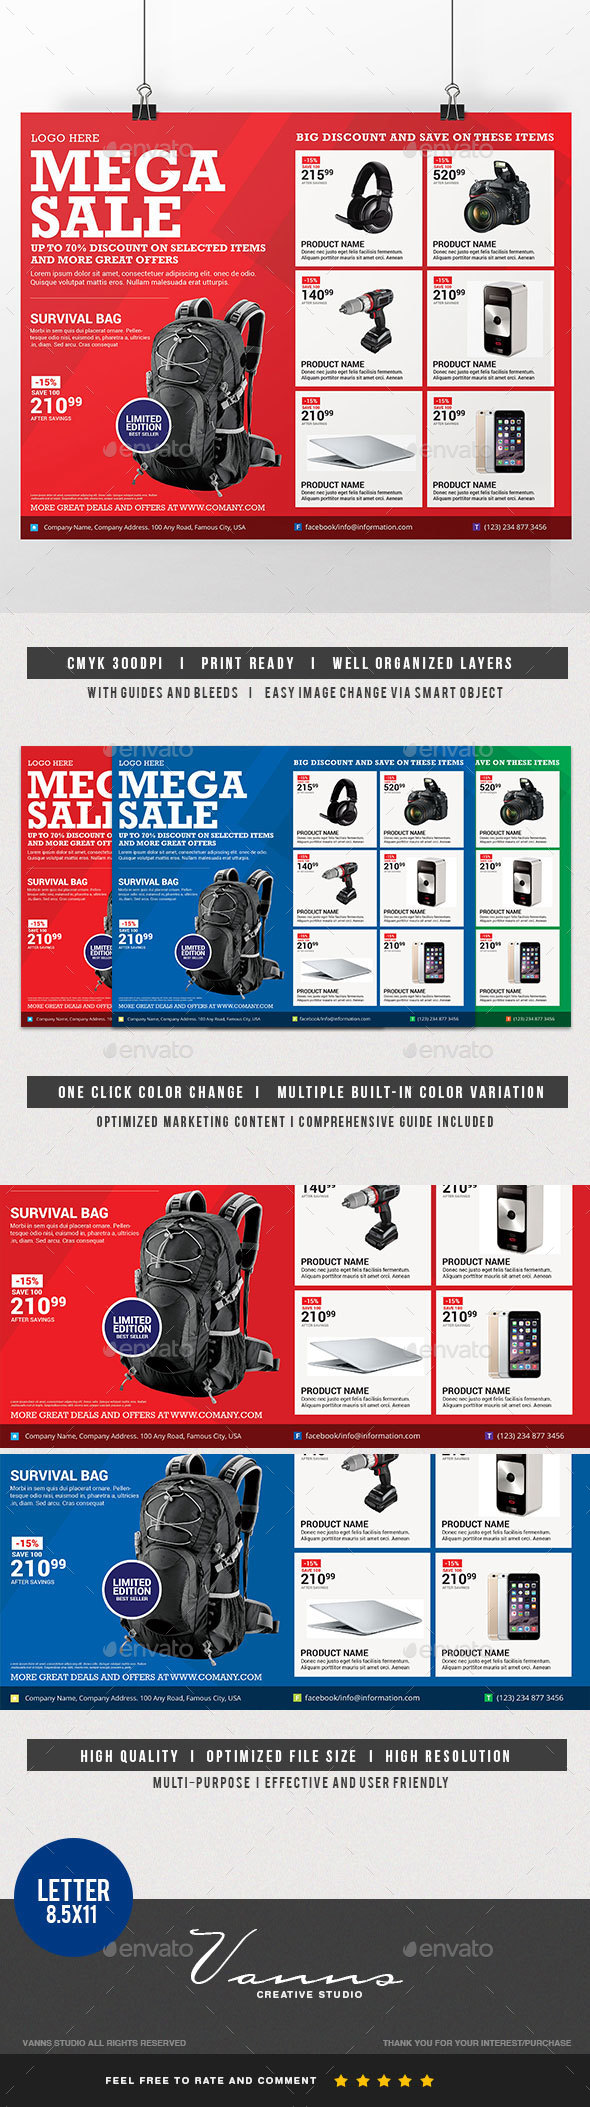 Mega Sale Flyer - Commerce Flyers